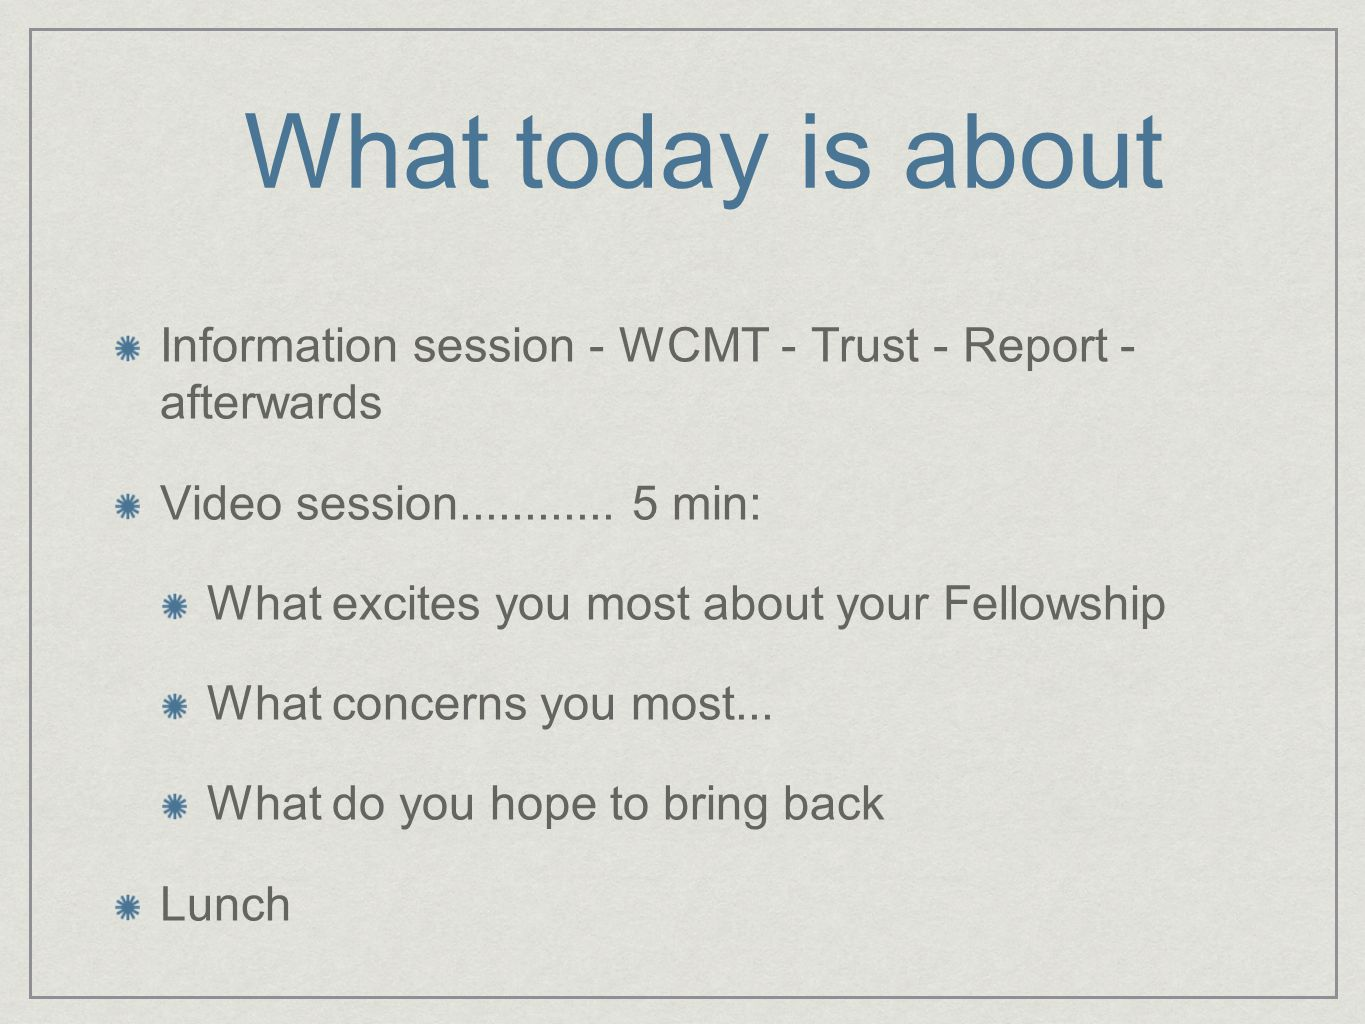 What today is about Information session - WCMT - Trust - Report - afterwards Video session............